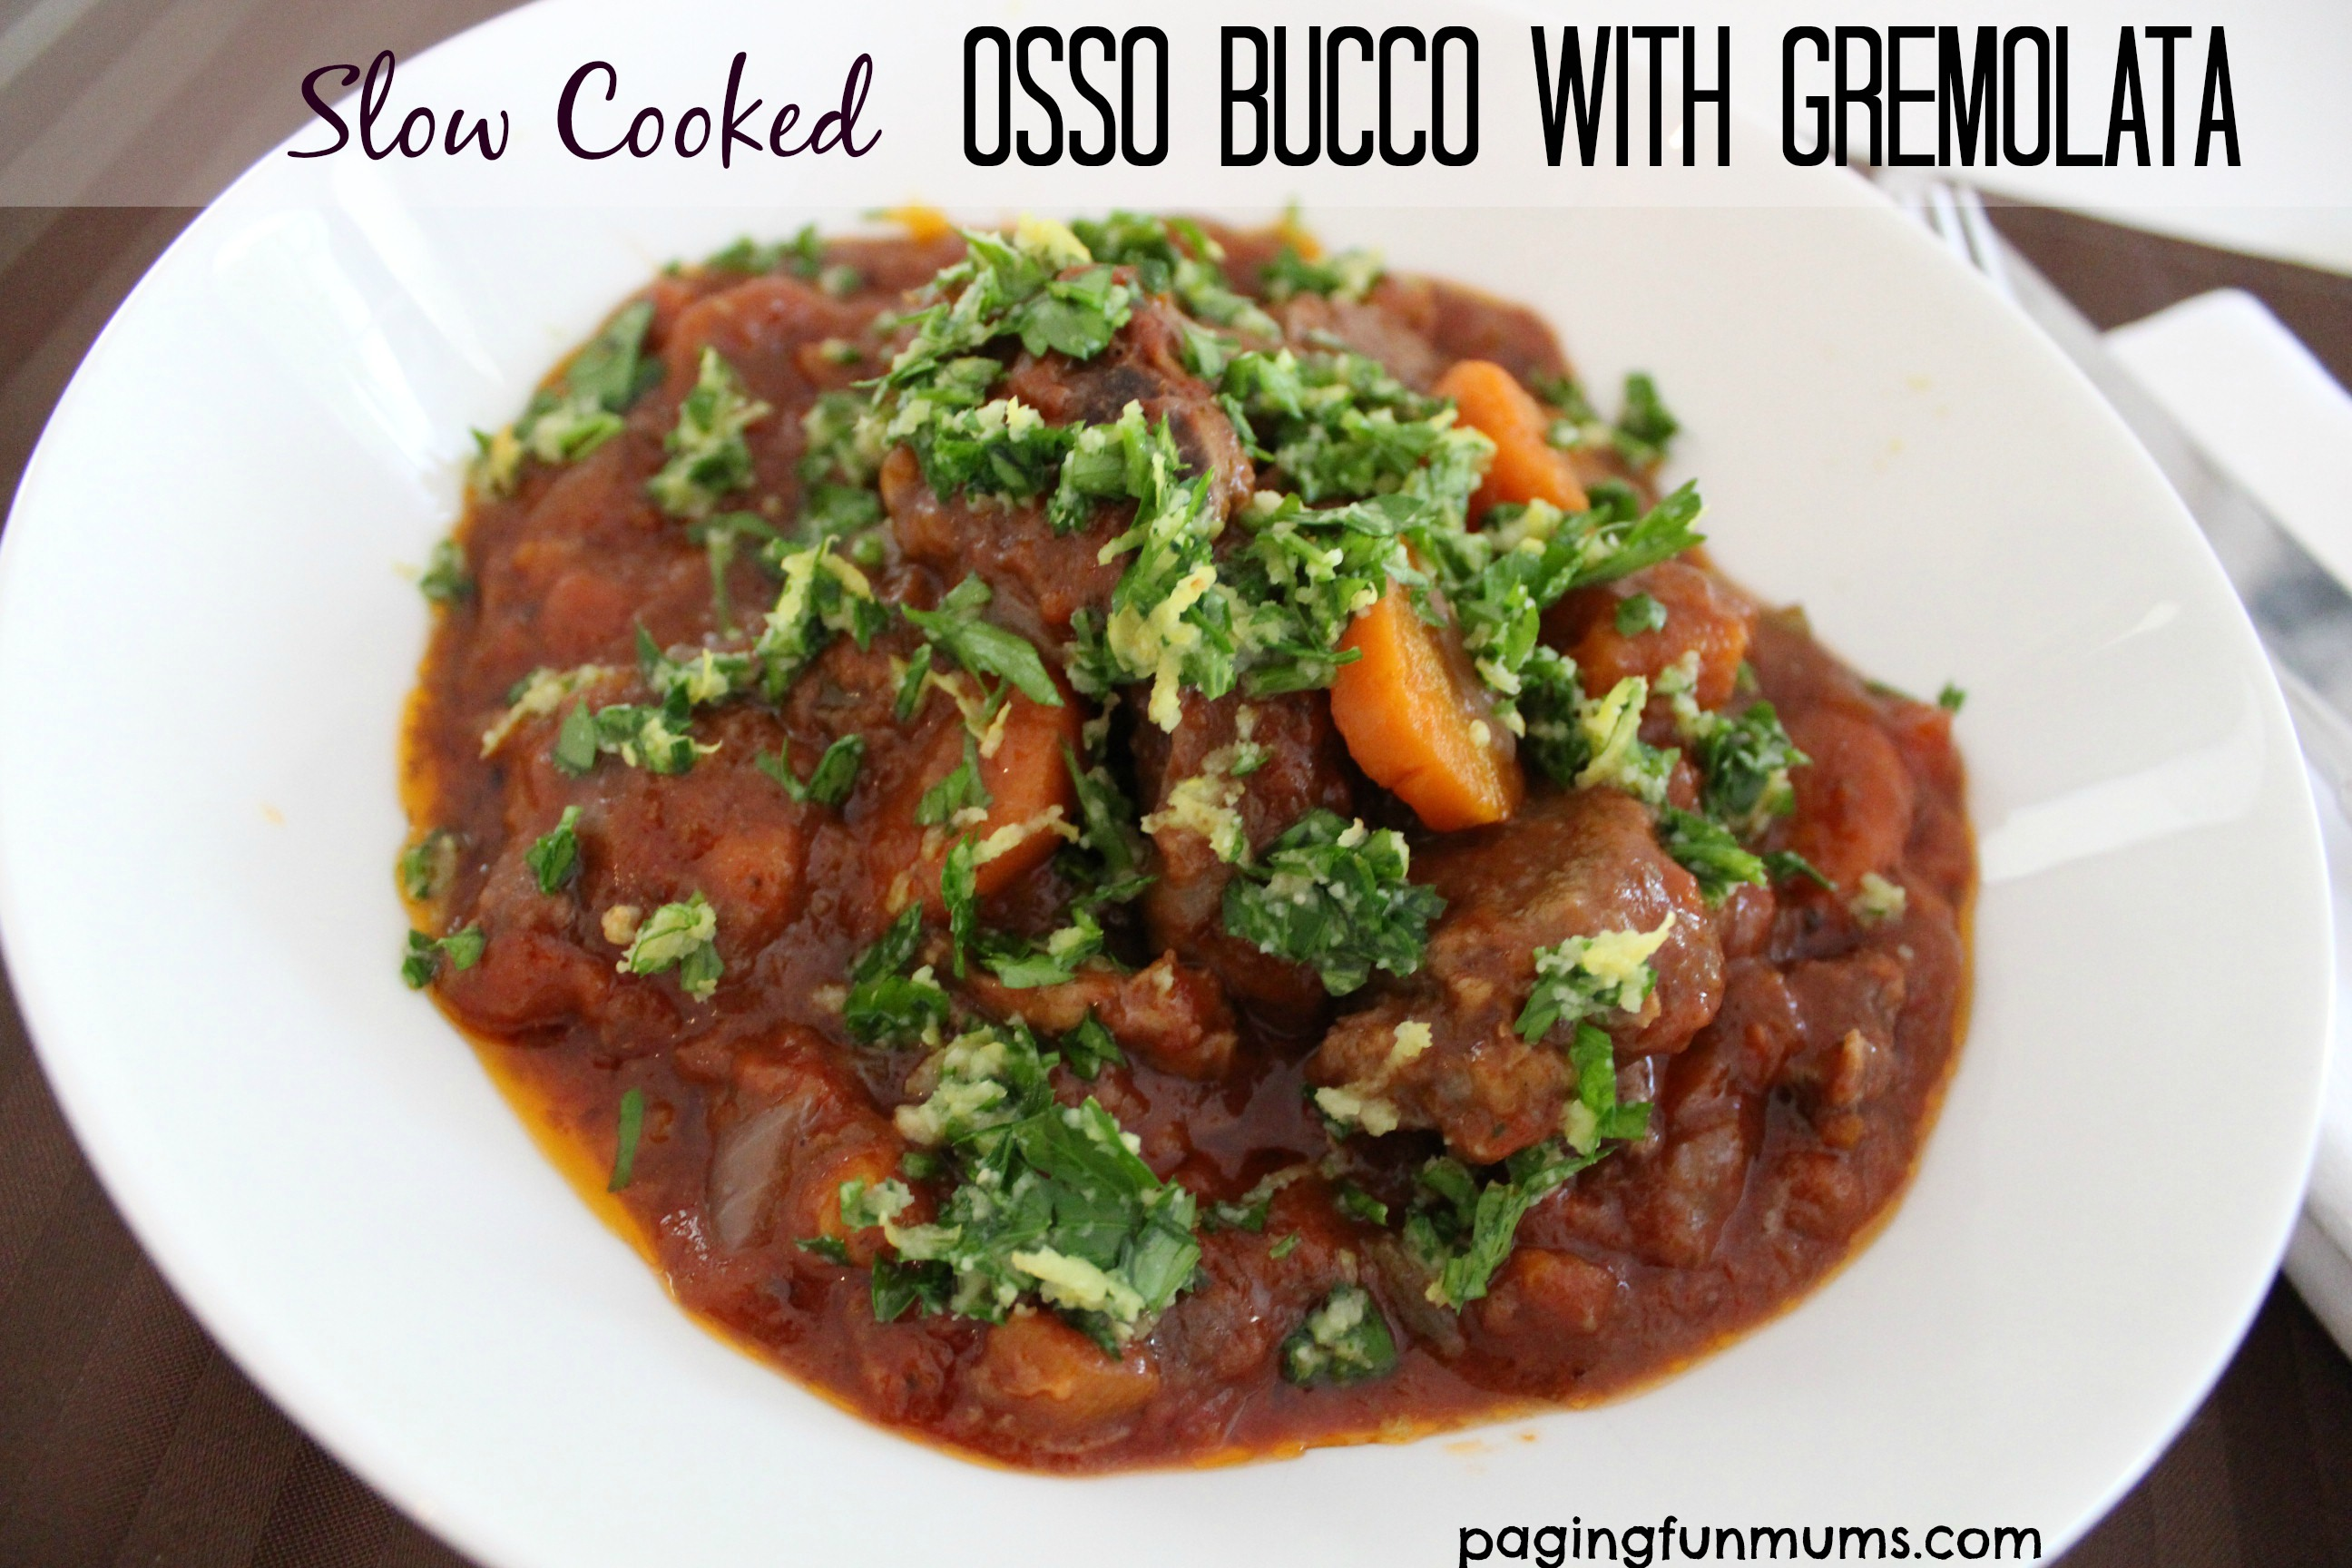 Slow Cooked Osso Bucco with Gremolata